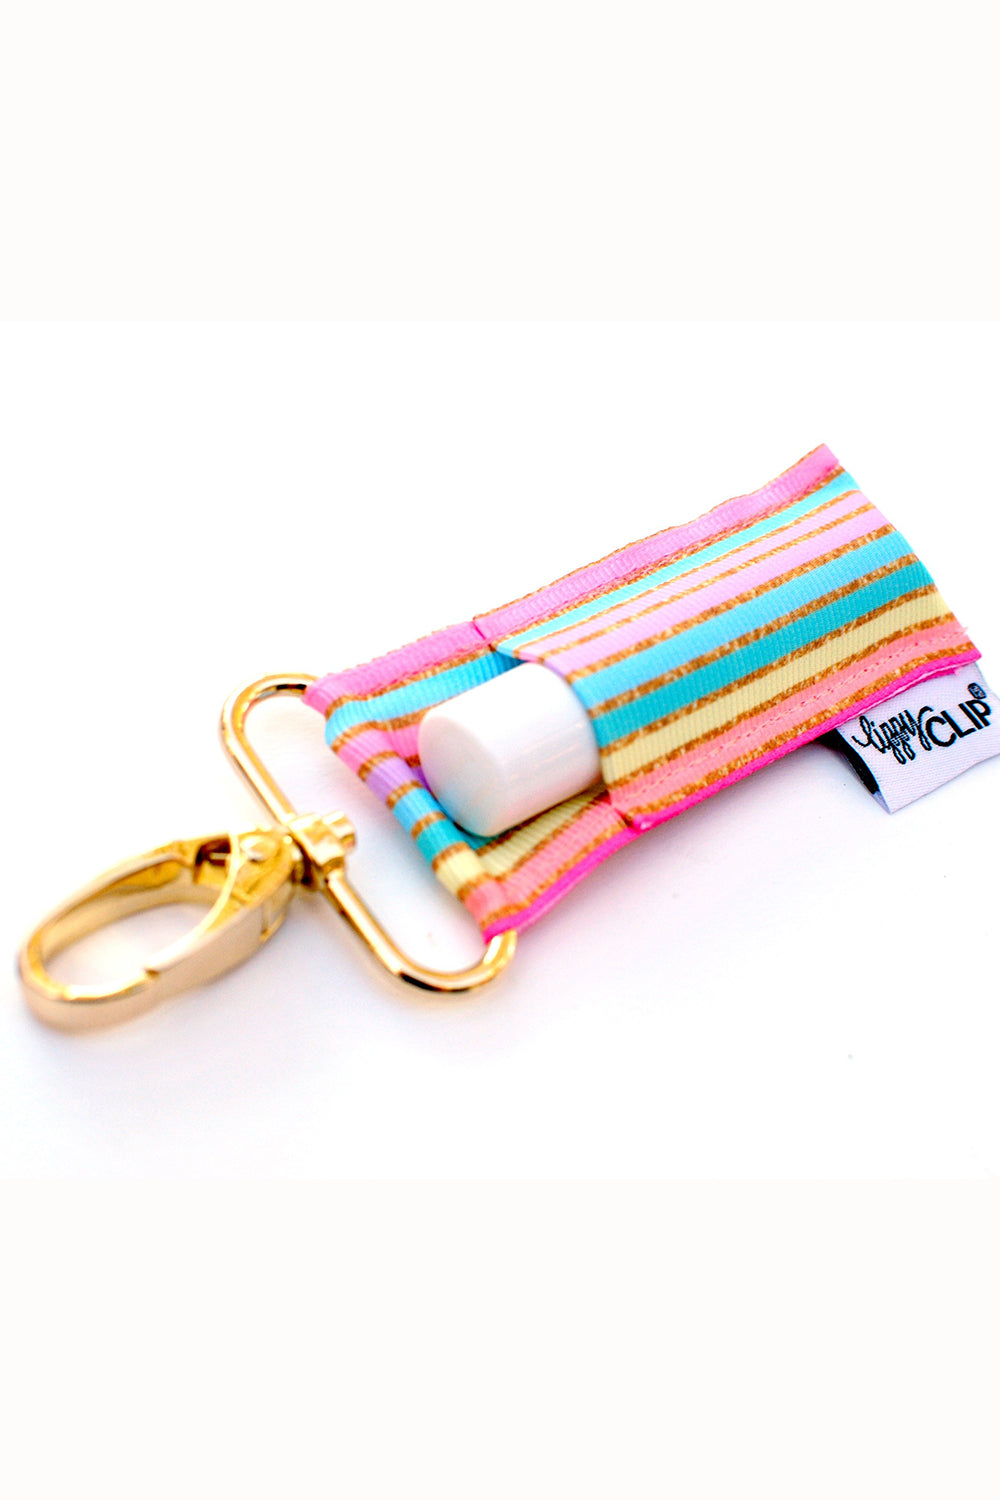 LippyClip Chapstick Holder Keychain  - Pastel & Gold Stripes